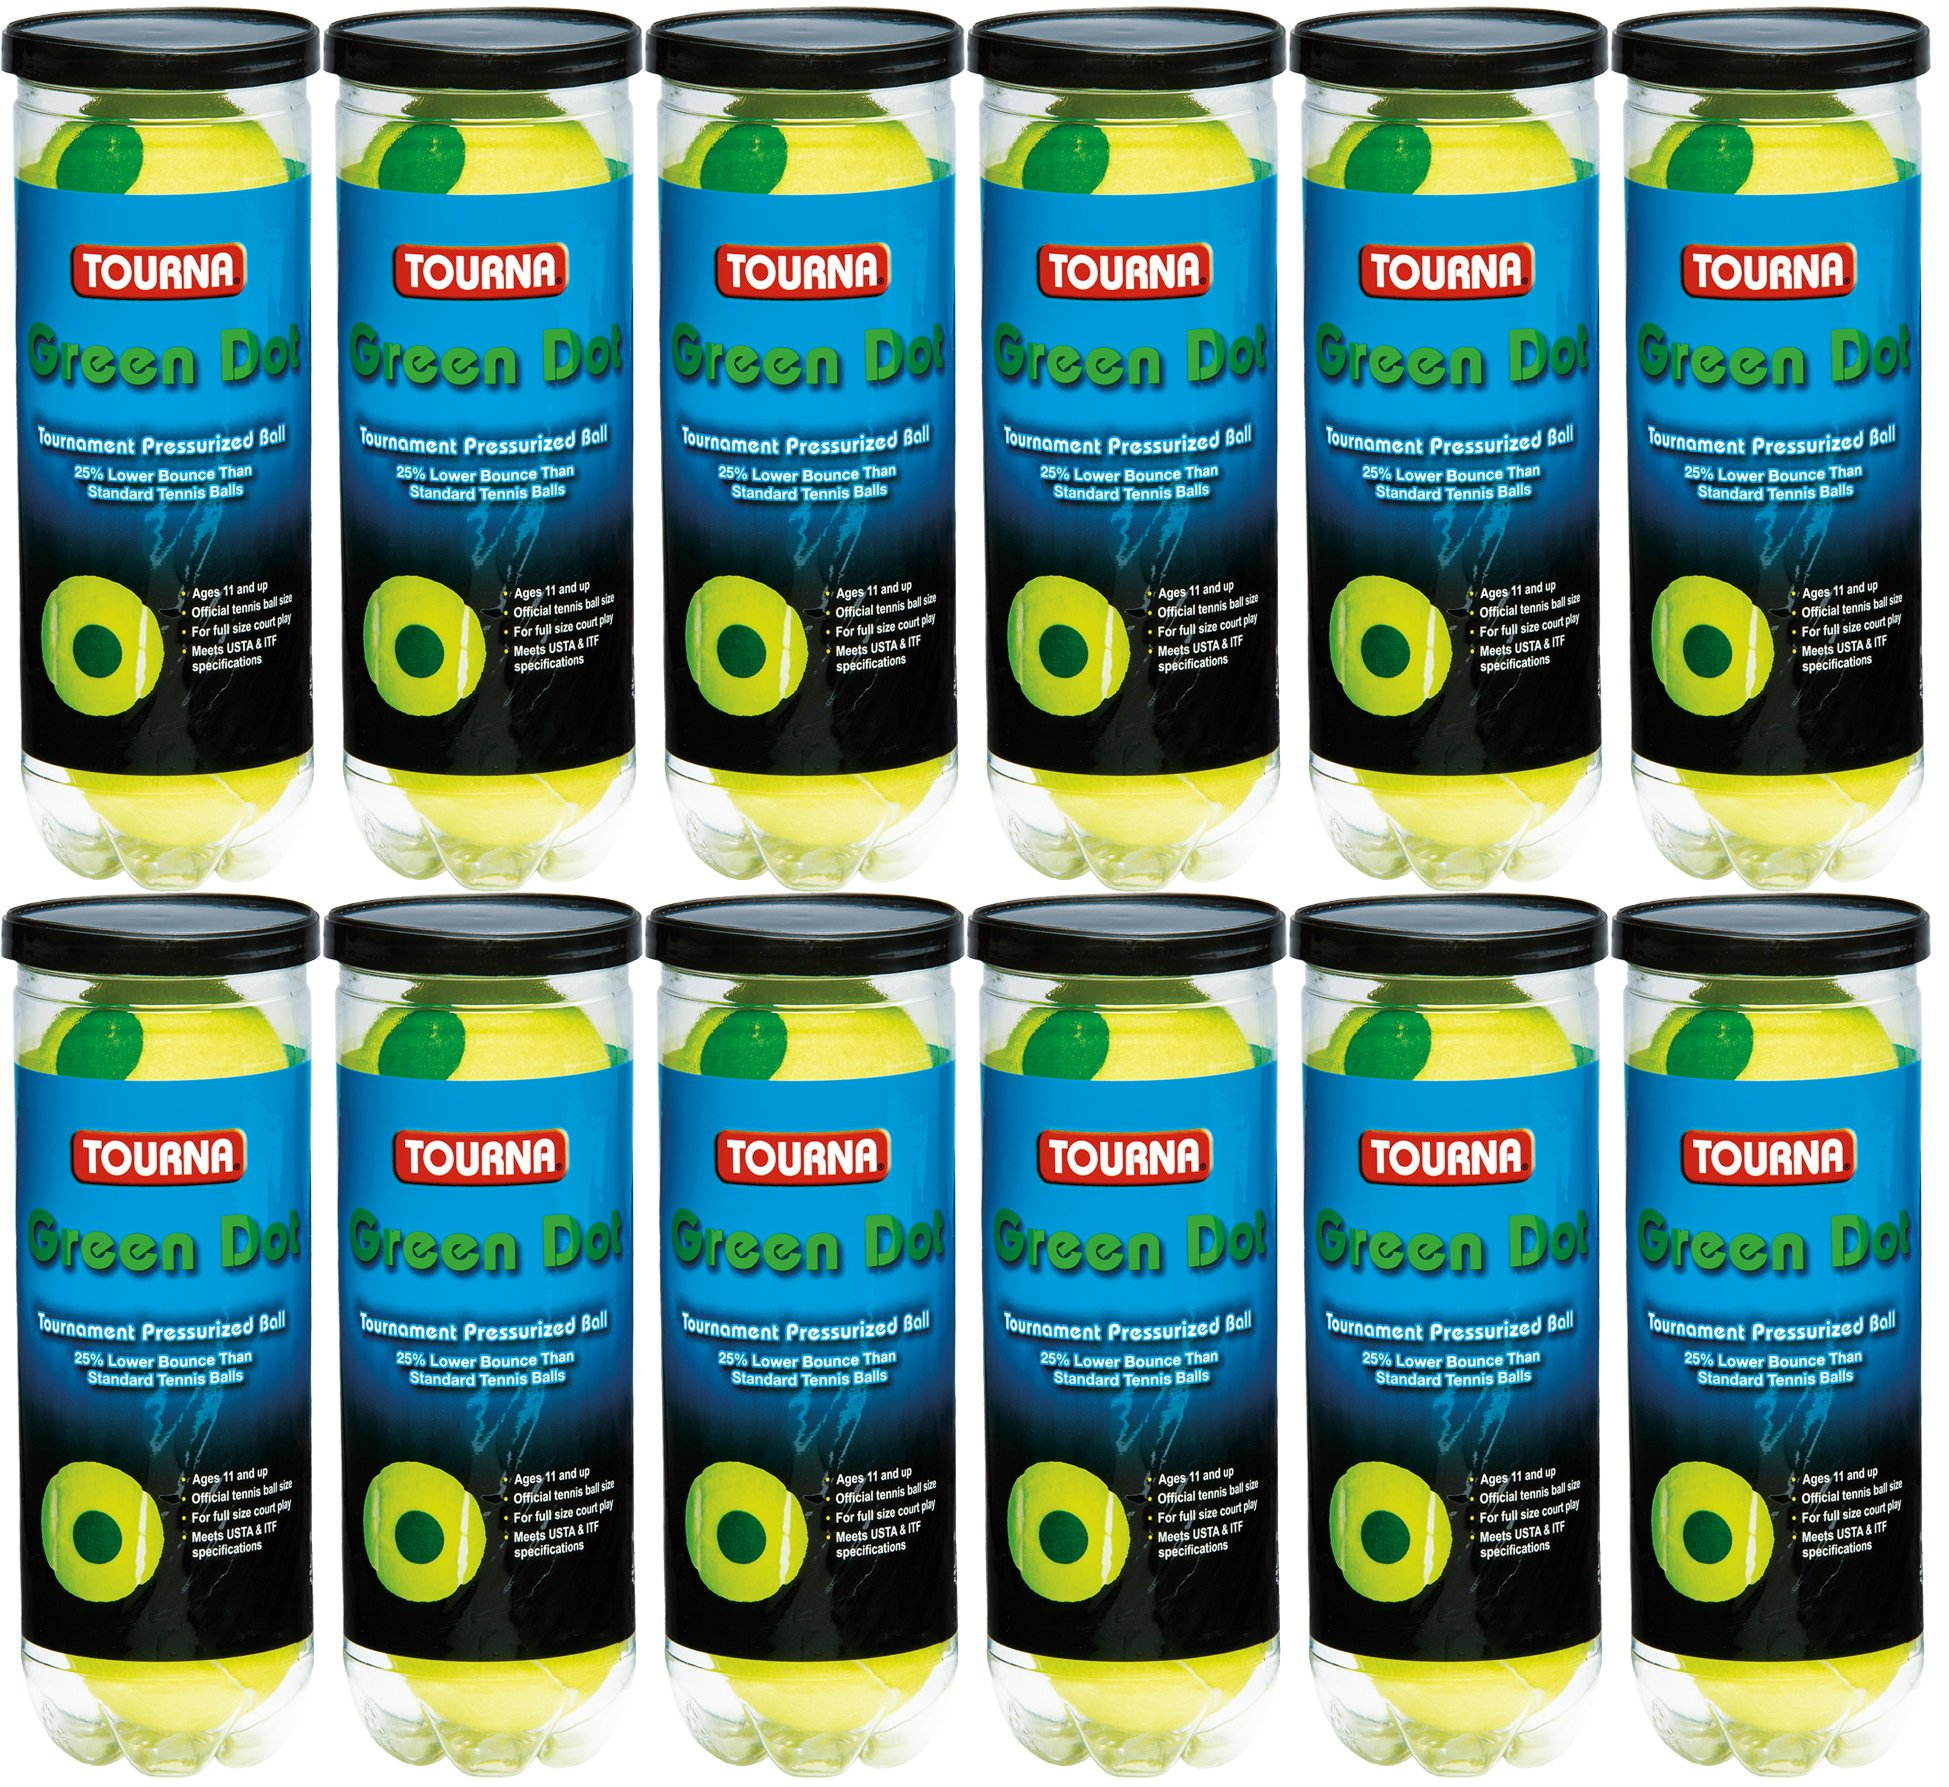 Tourna 12 Pack Pressurized Green Dot Tennis Balls in a Pressurized Can by Tourna